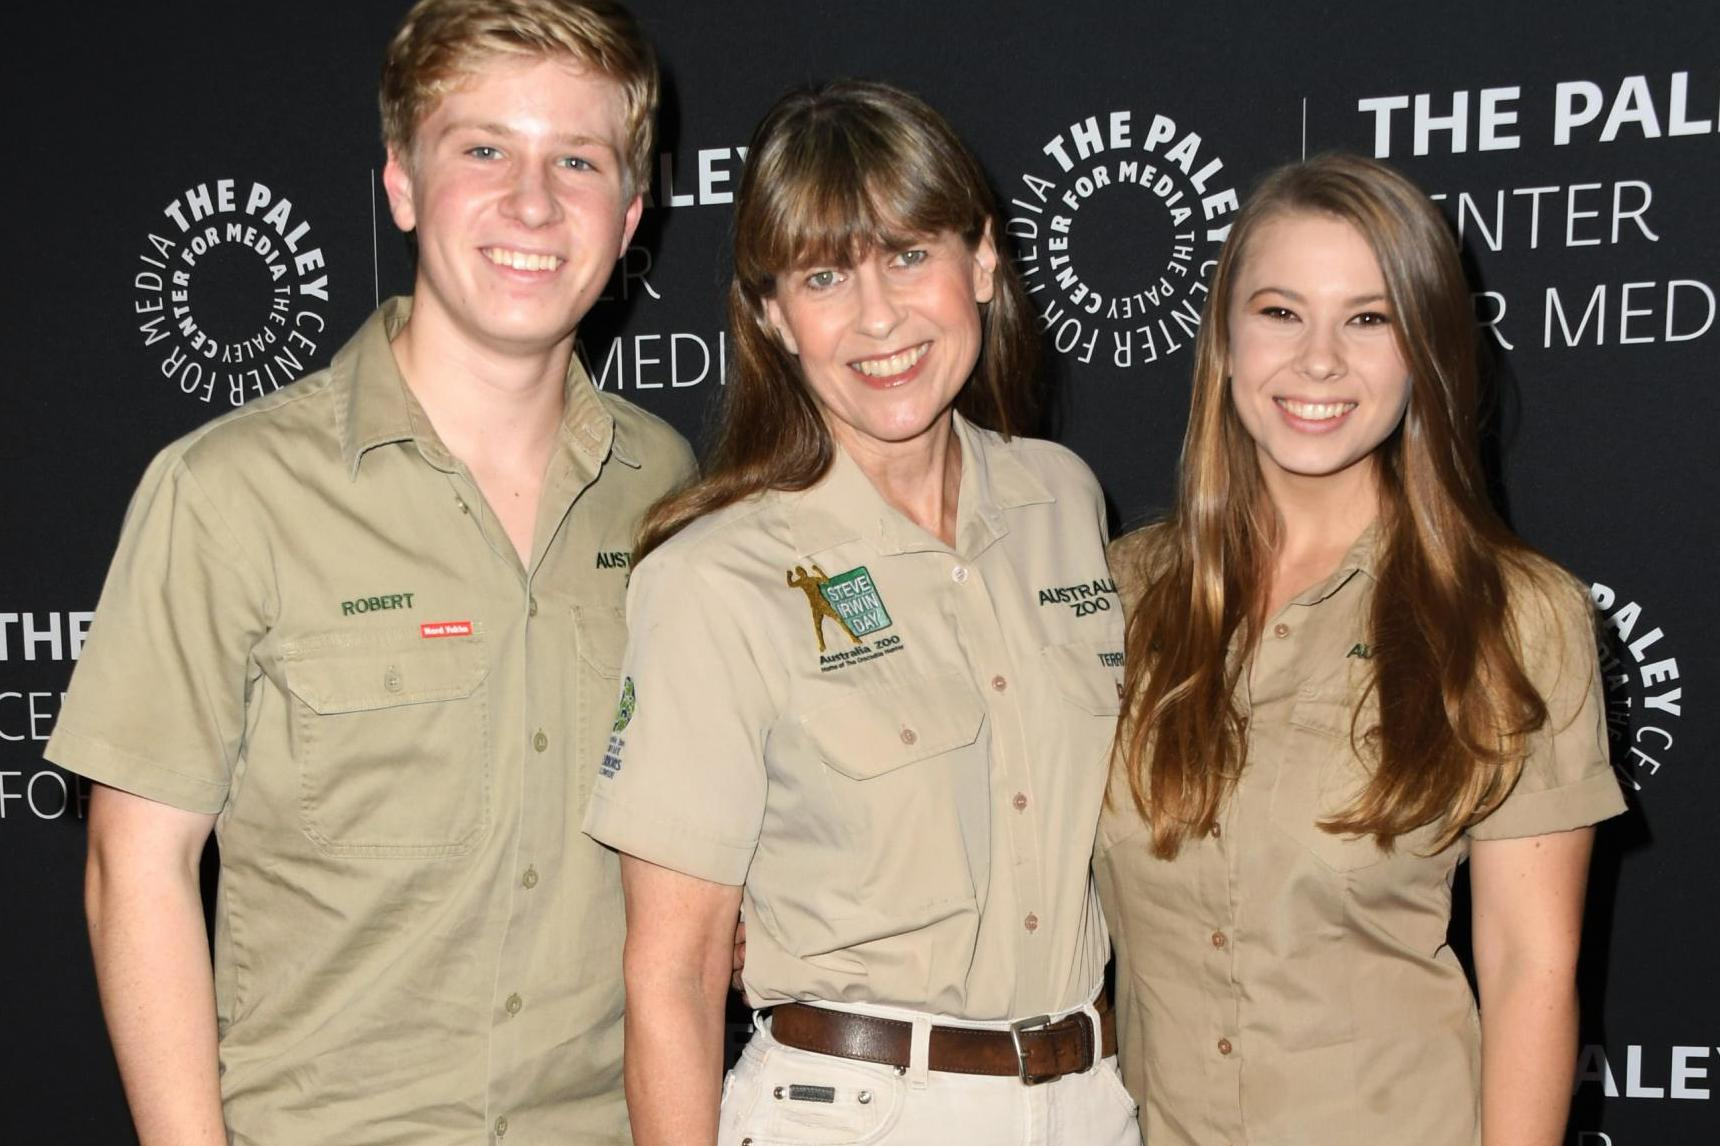 Australia wildfires: Family of Steve Irwin say they've treated 90,000 injured animals